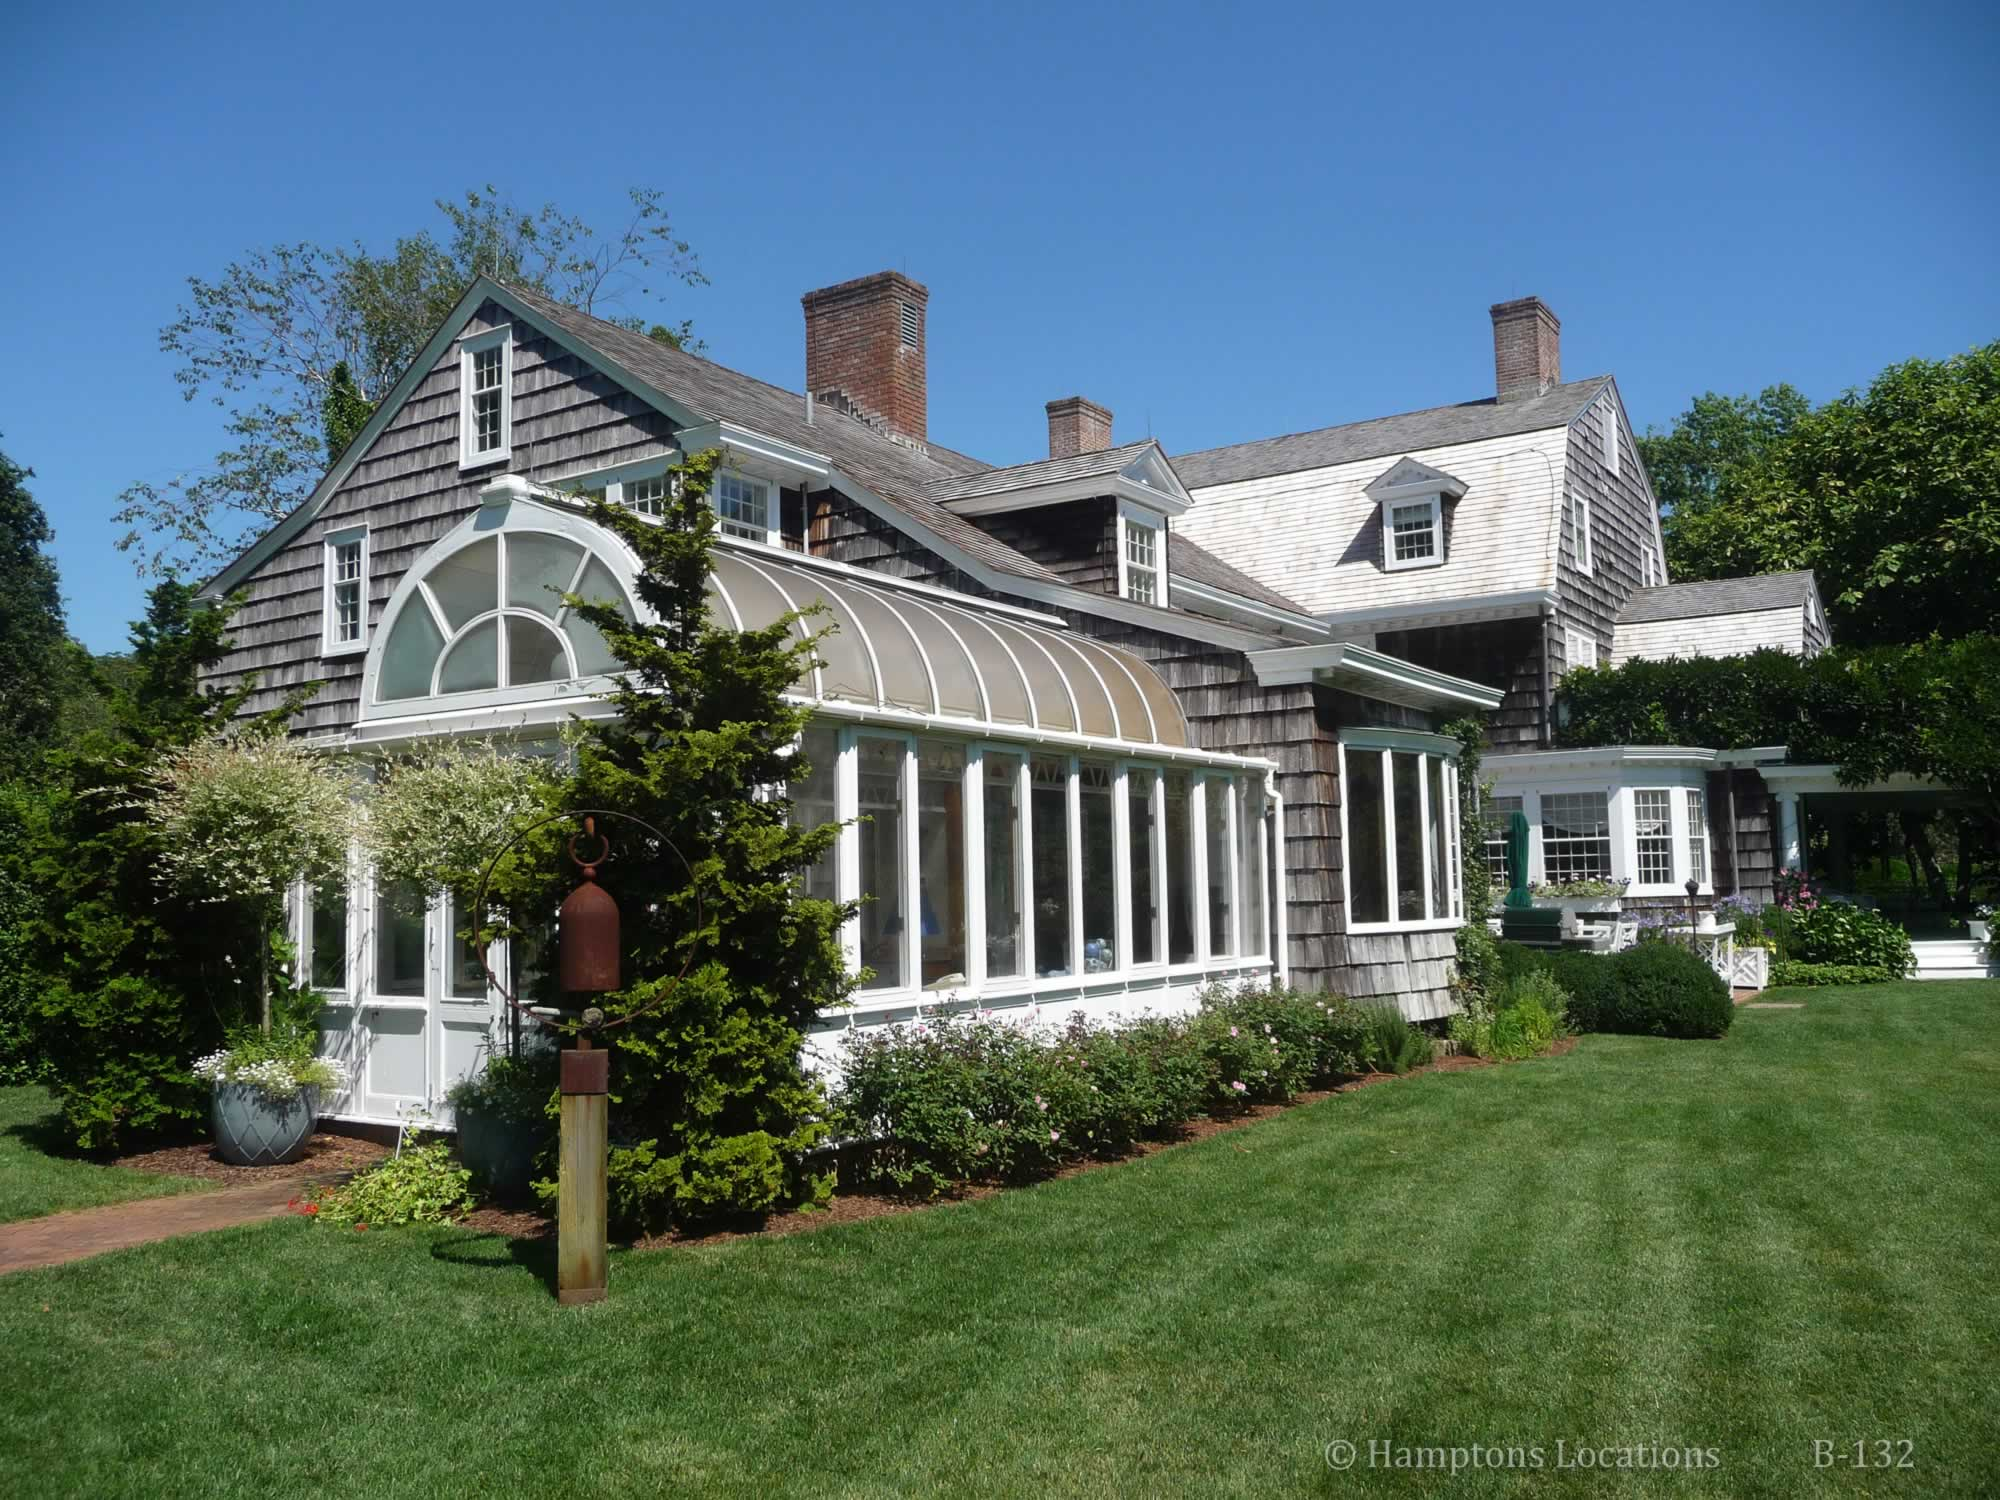 Hamptons Locations Scouting Production And Services For Photo Shoots Film Weddings Events